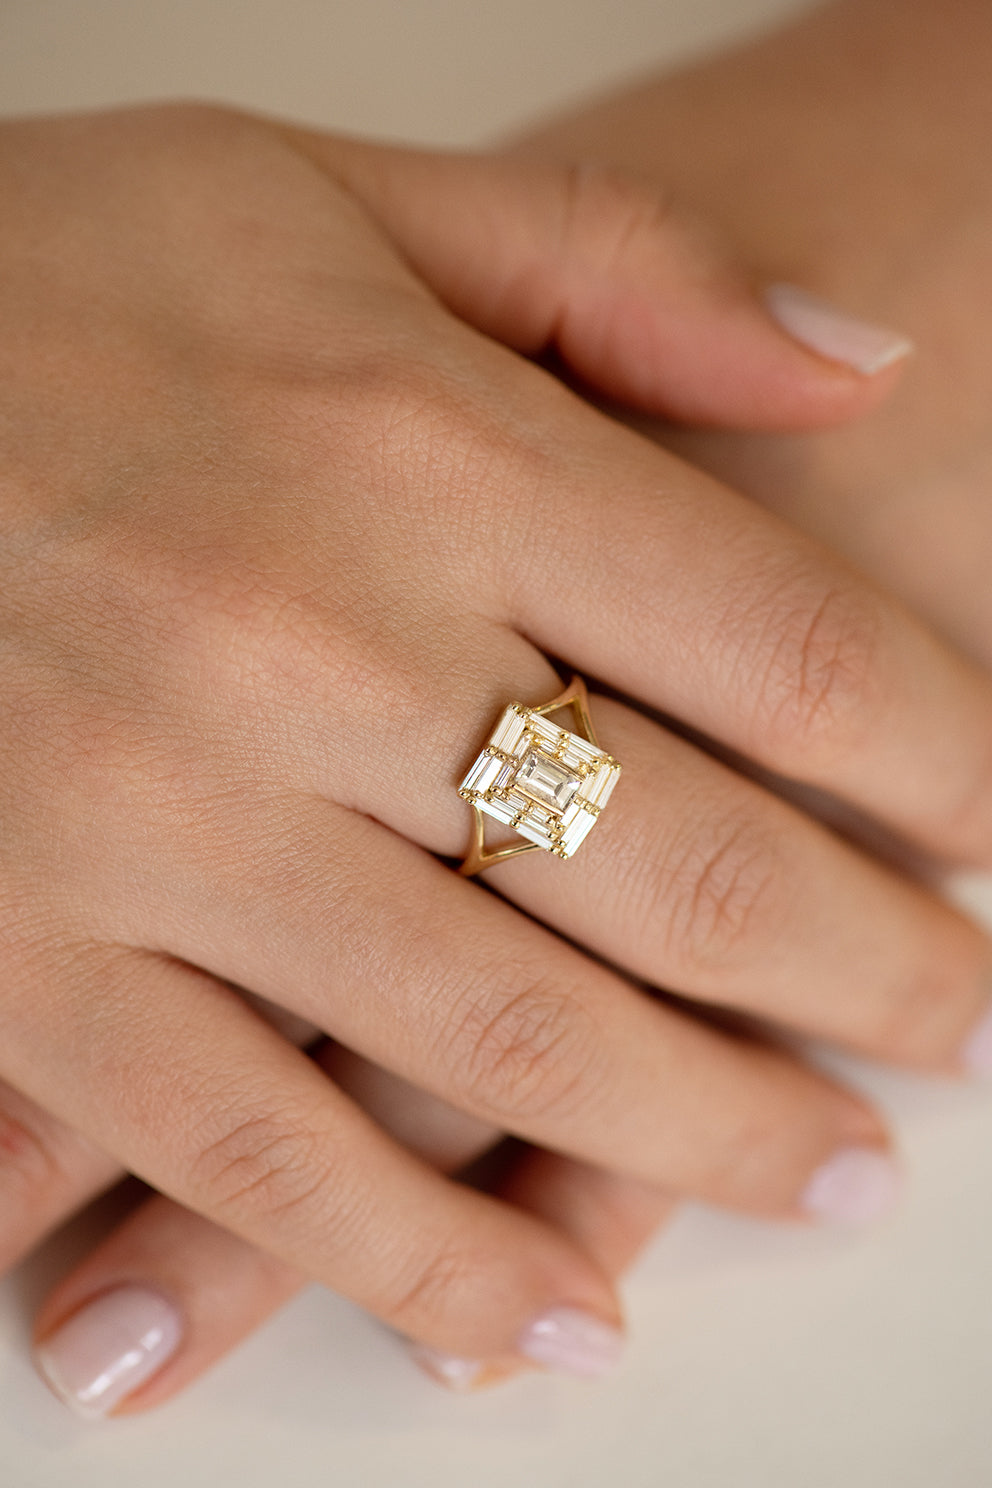 Baguette Cut Engagement Ring - Baguette Temple Ring on Hand Looking Down Front Shot